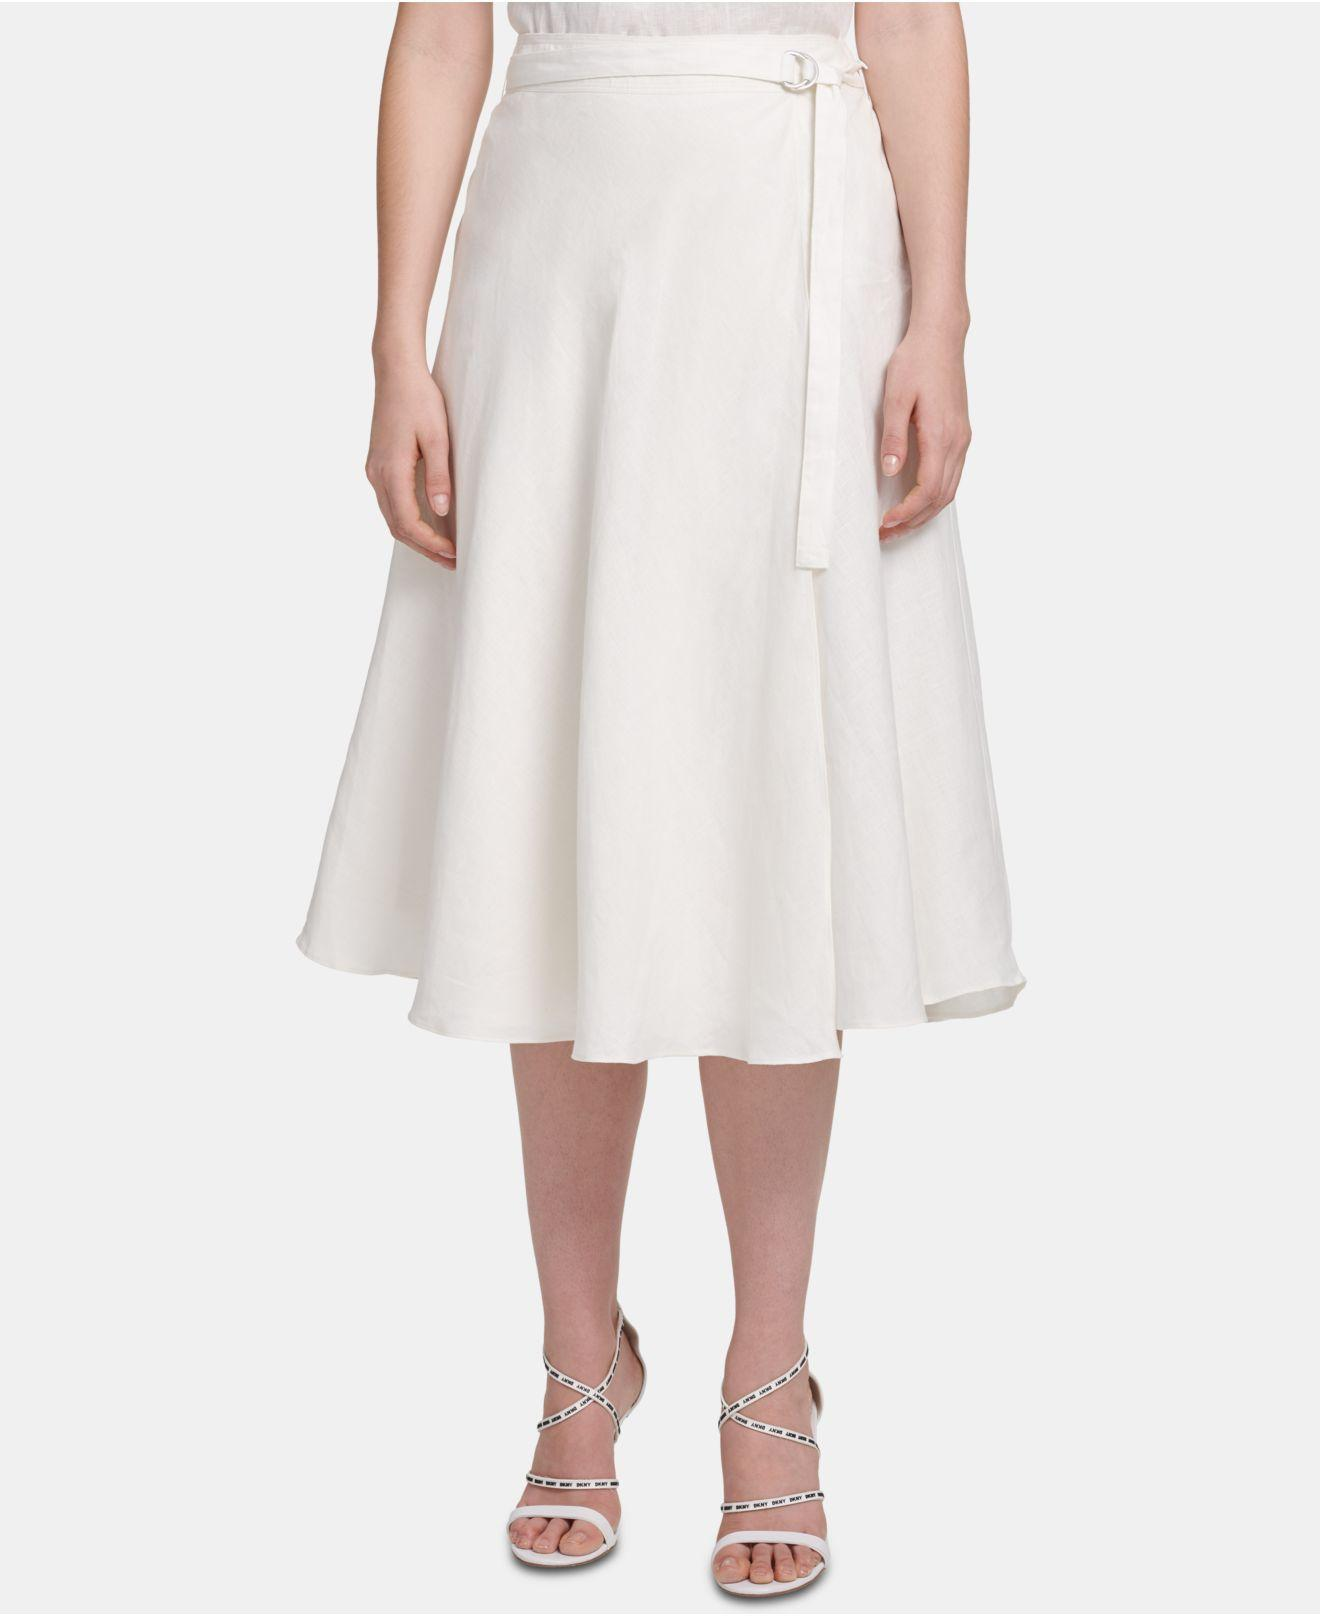 lowest price professional website Super discount Women's White Belted Midi Skirt